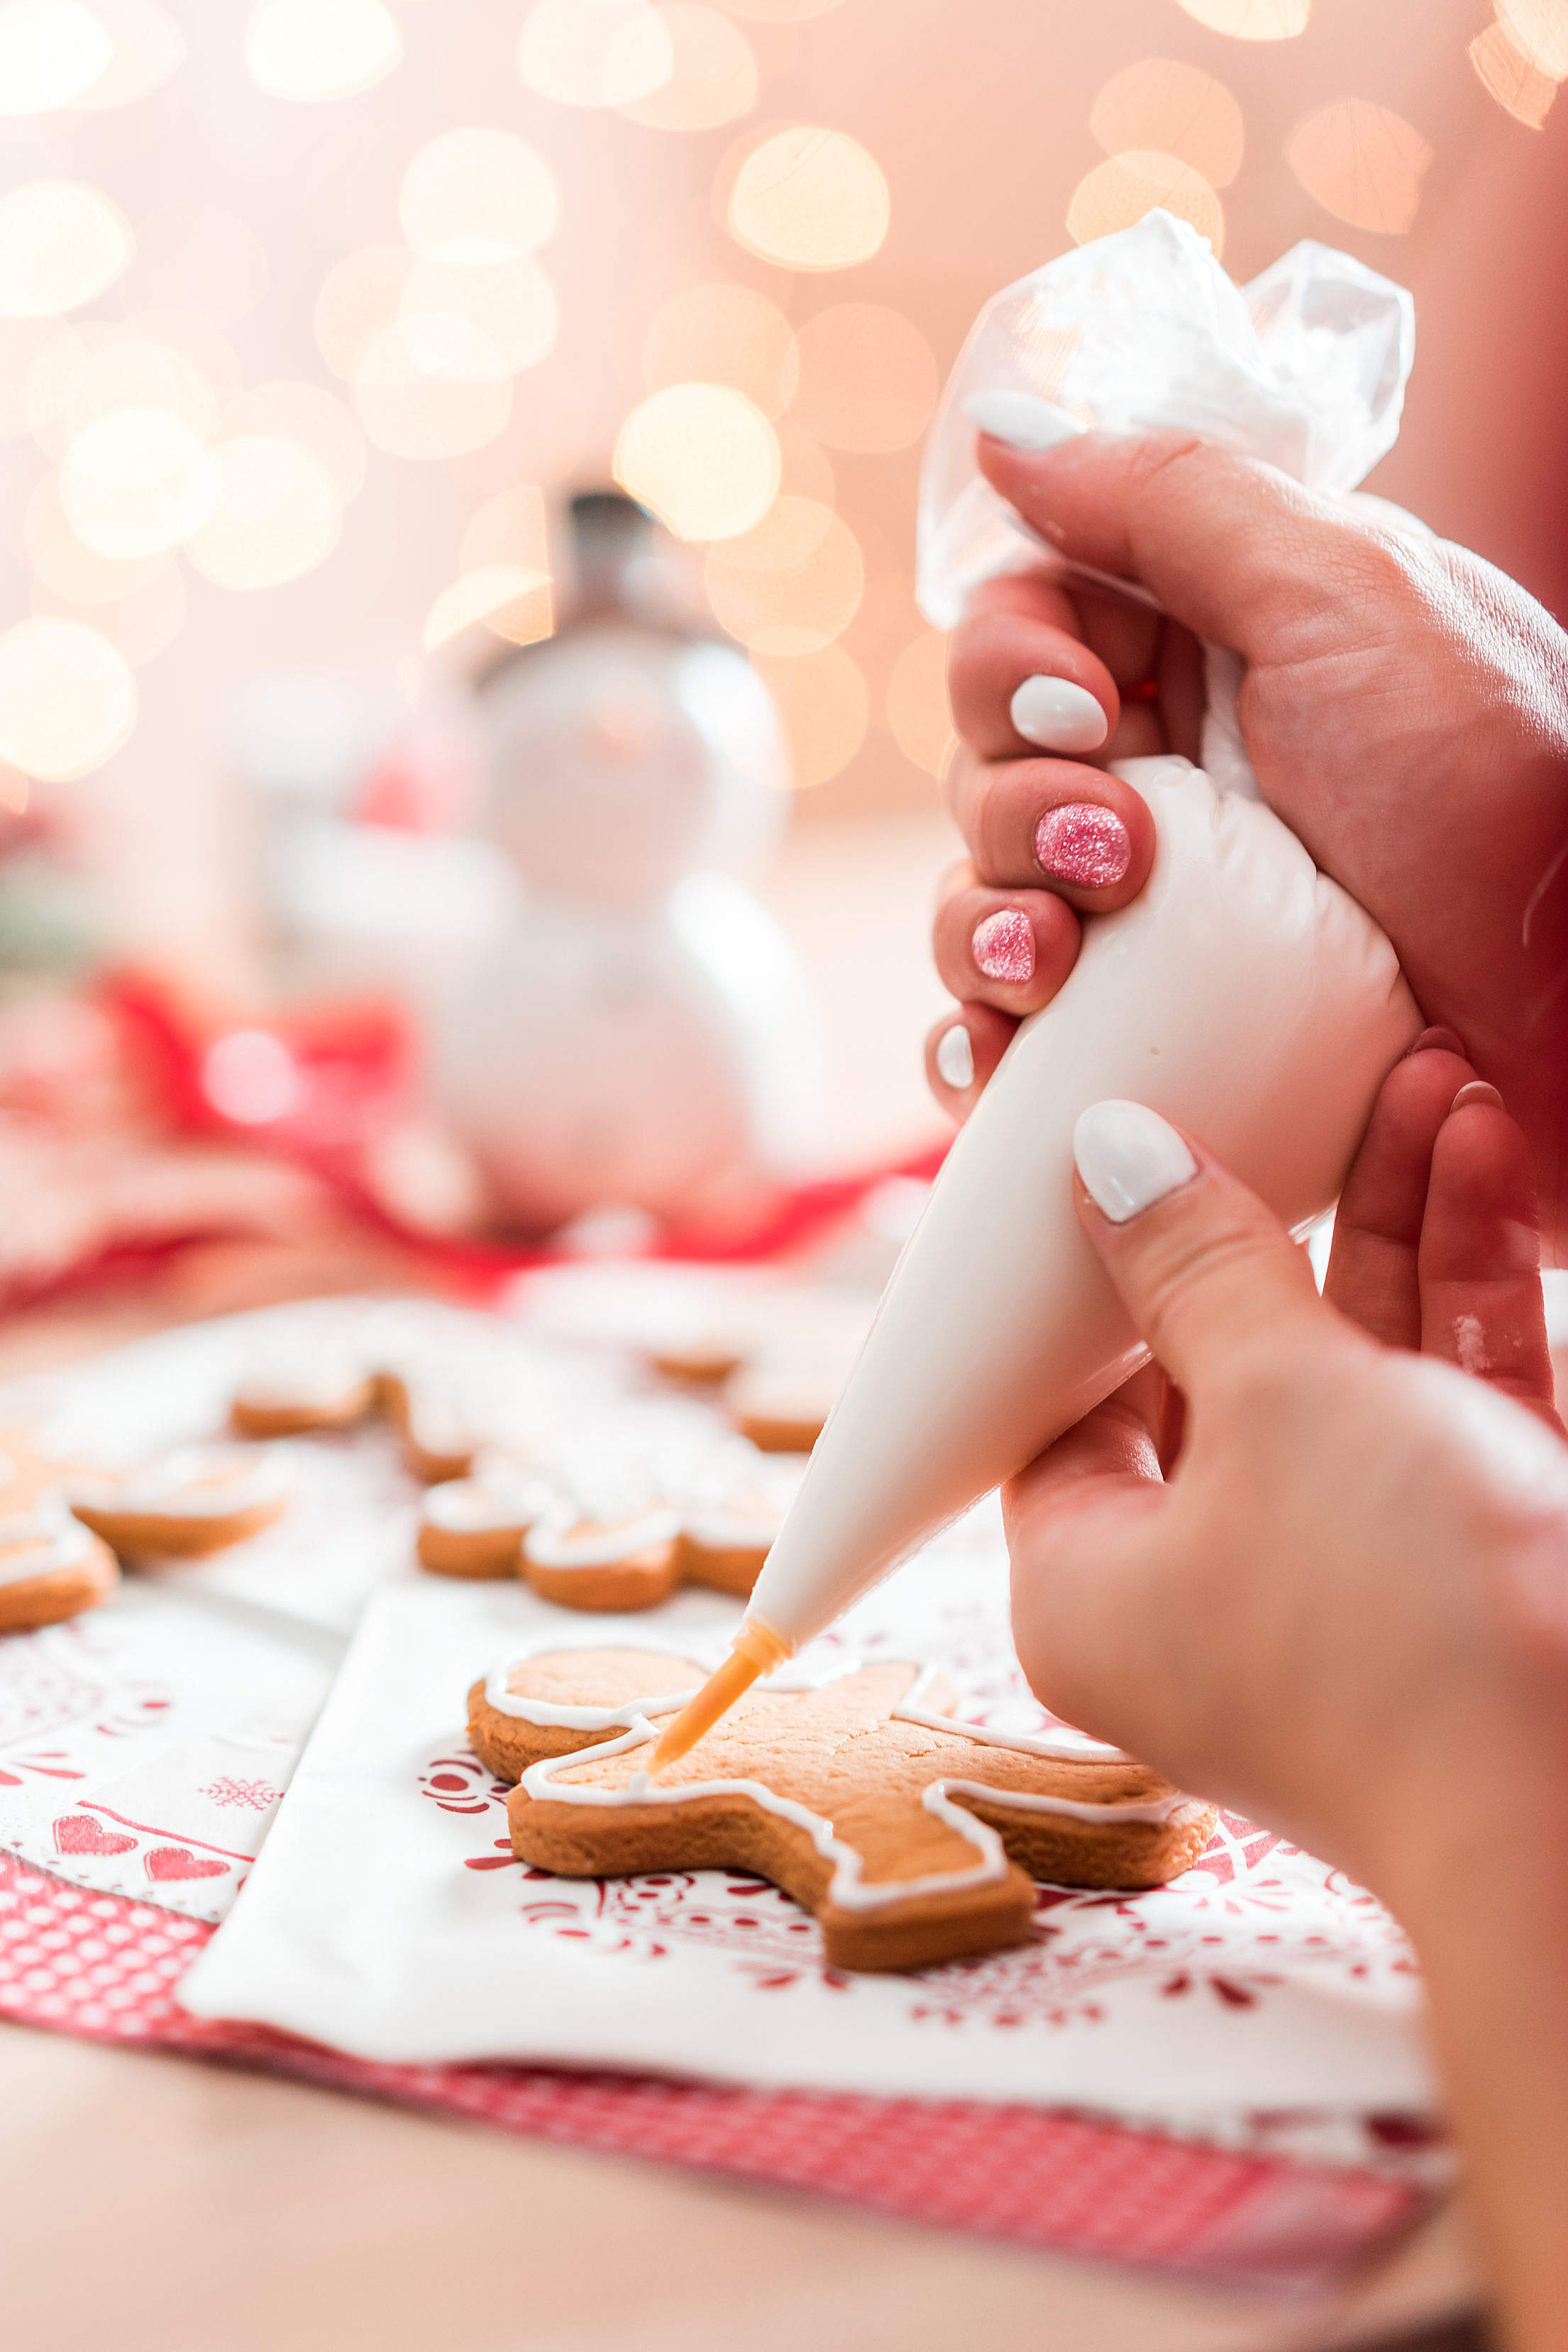 Christmas Gingerbread Decorating Free Stock Photo